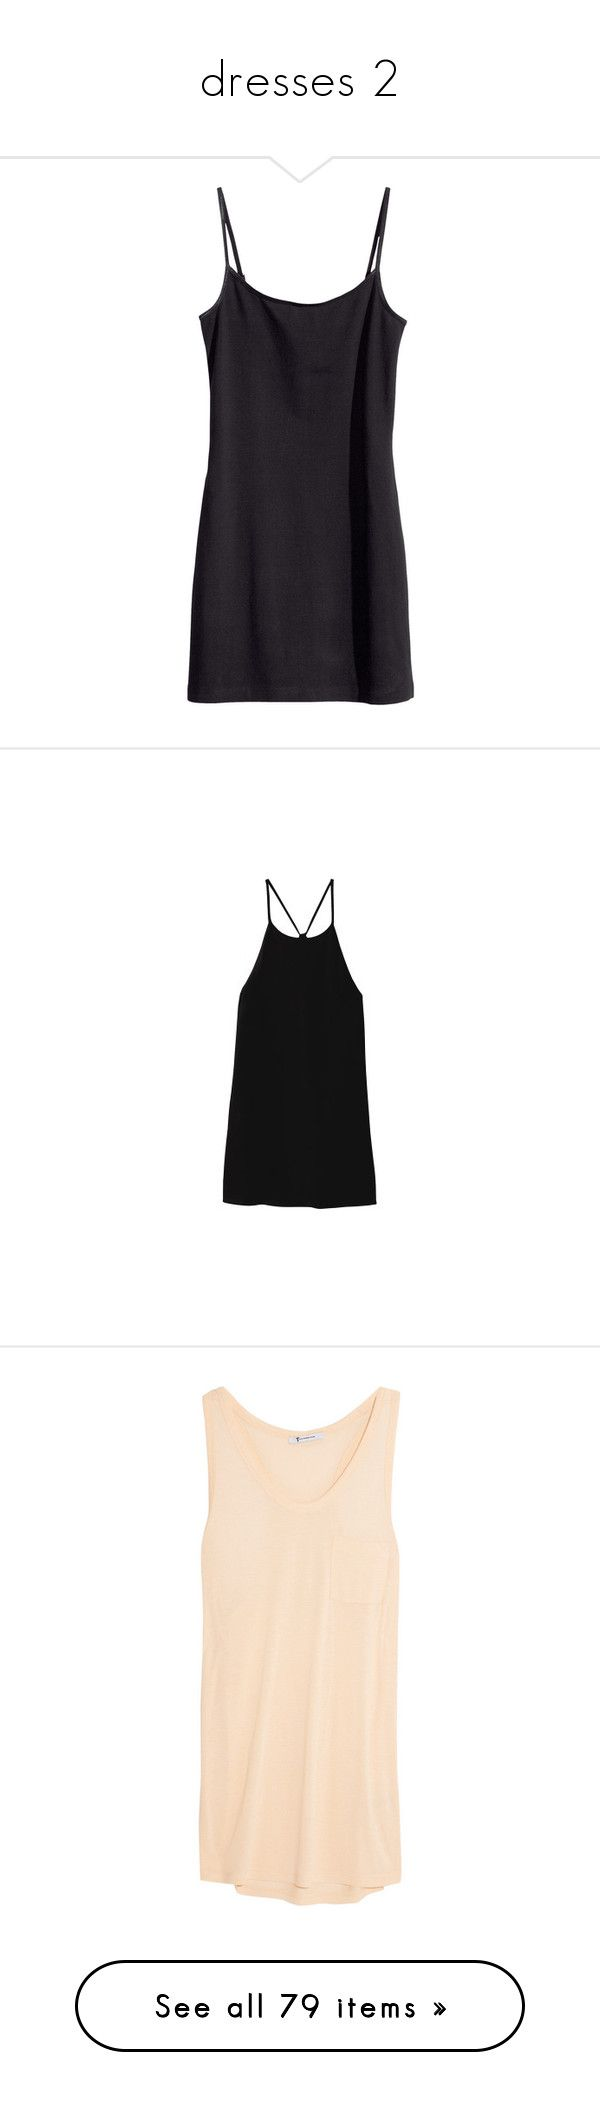 """""""dresses 2"""" by flaw-in-my-code ❤ liked on Polyvore featuring dresses, tops, shirts, tanks, black, tank tops, tibi, tibi cami, silk camisole and silk cami"""